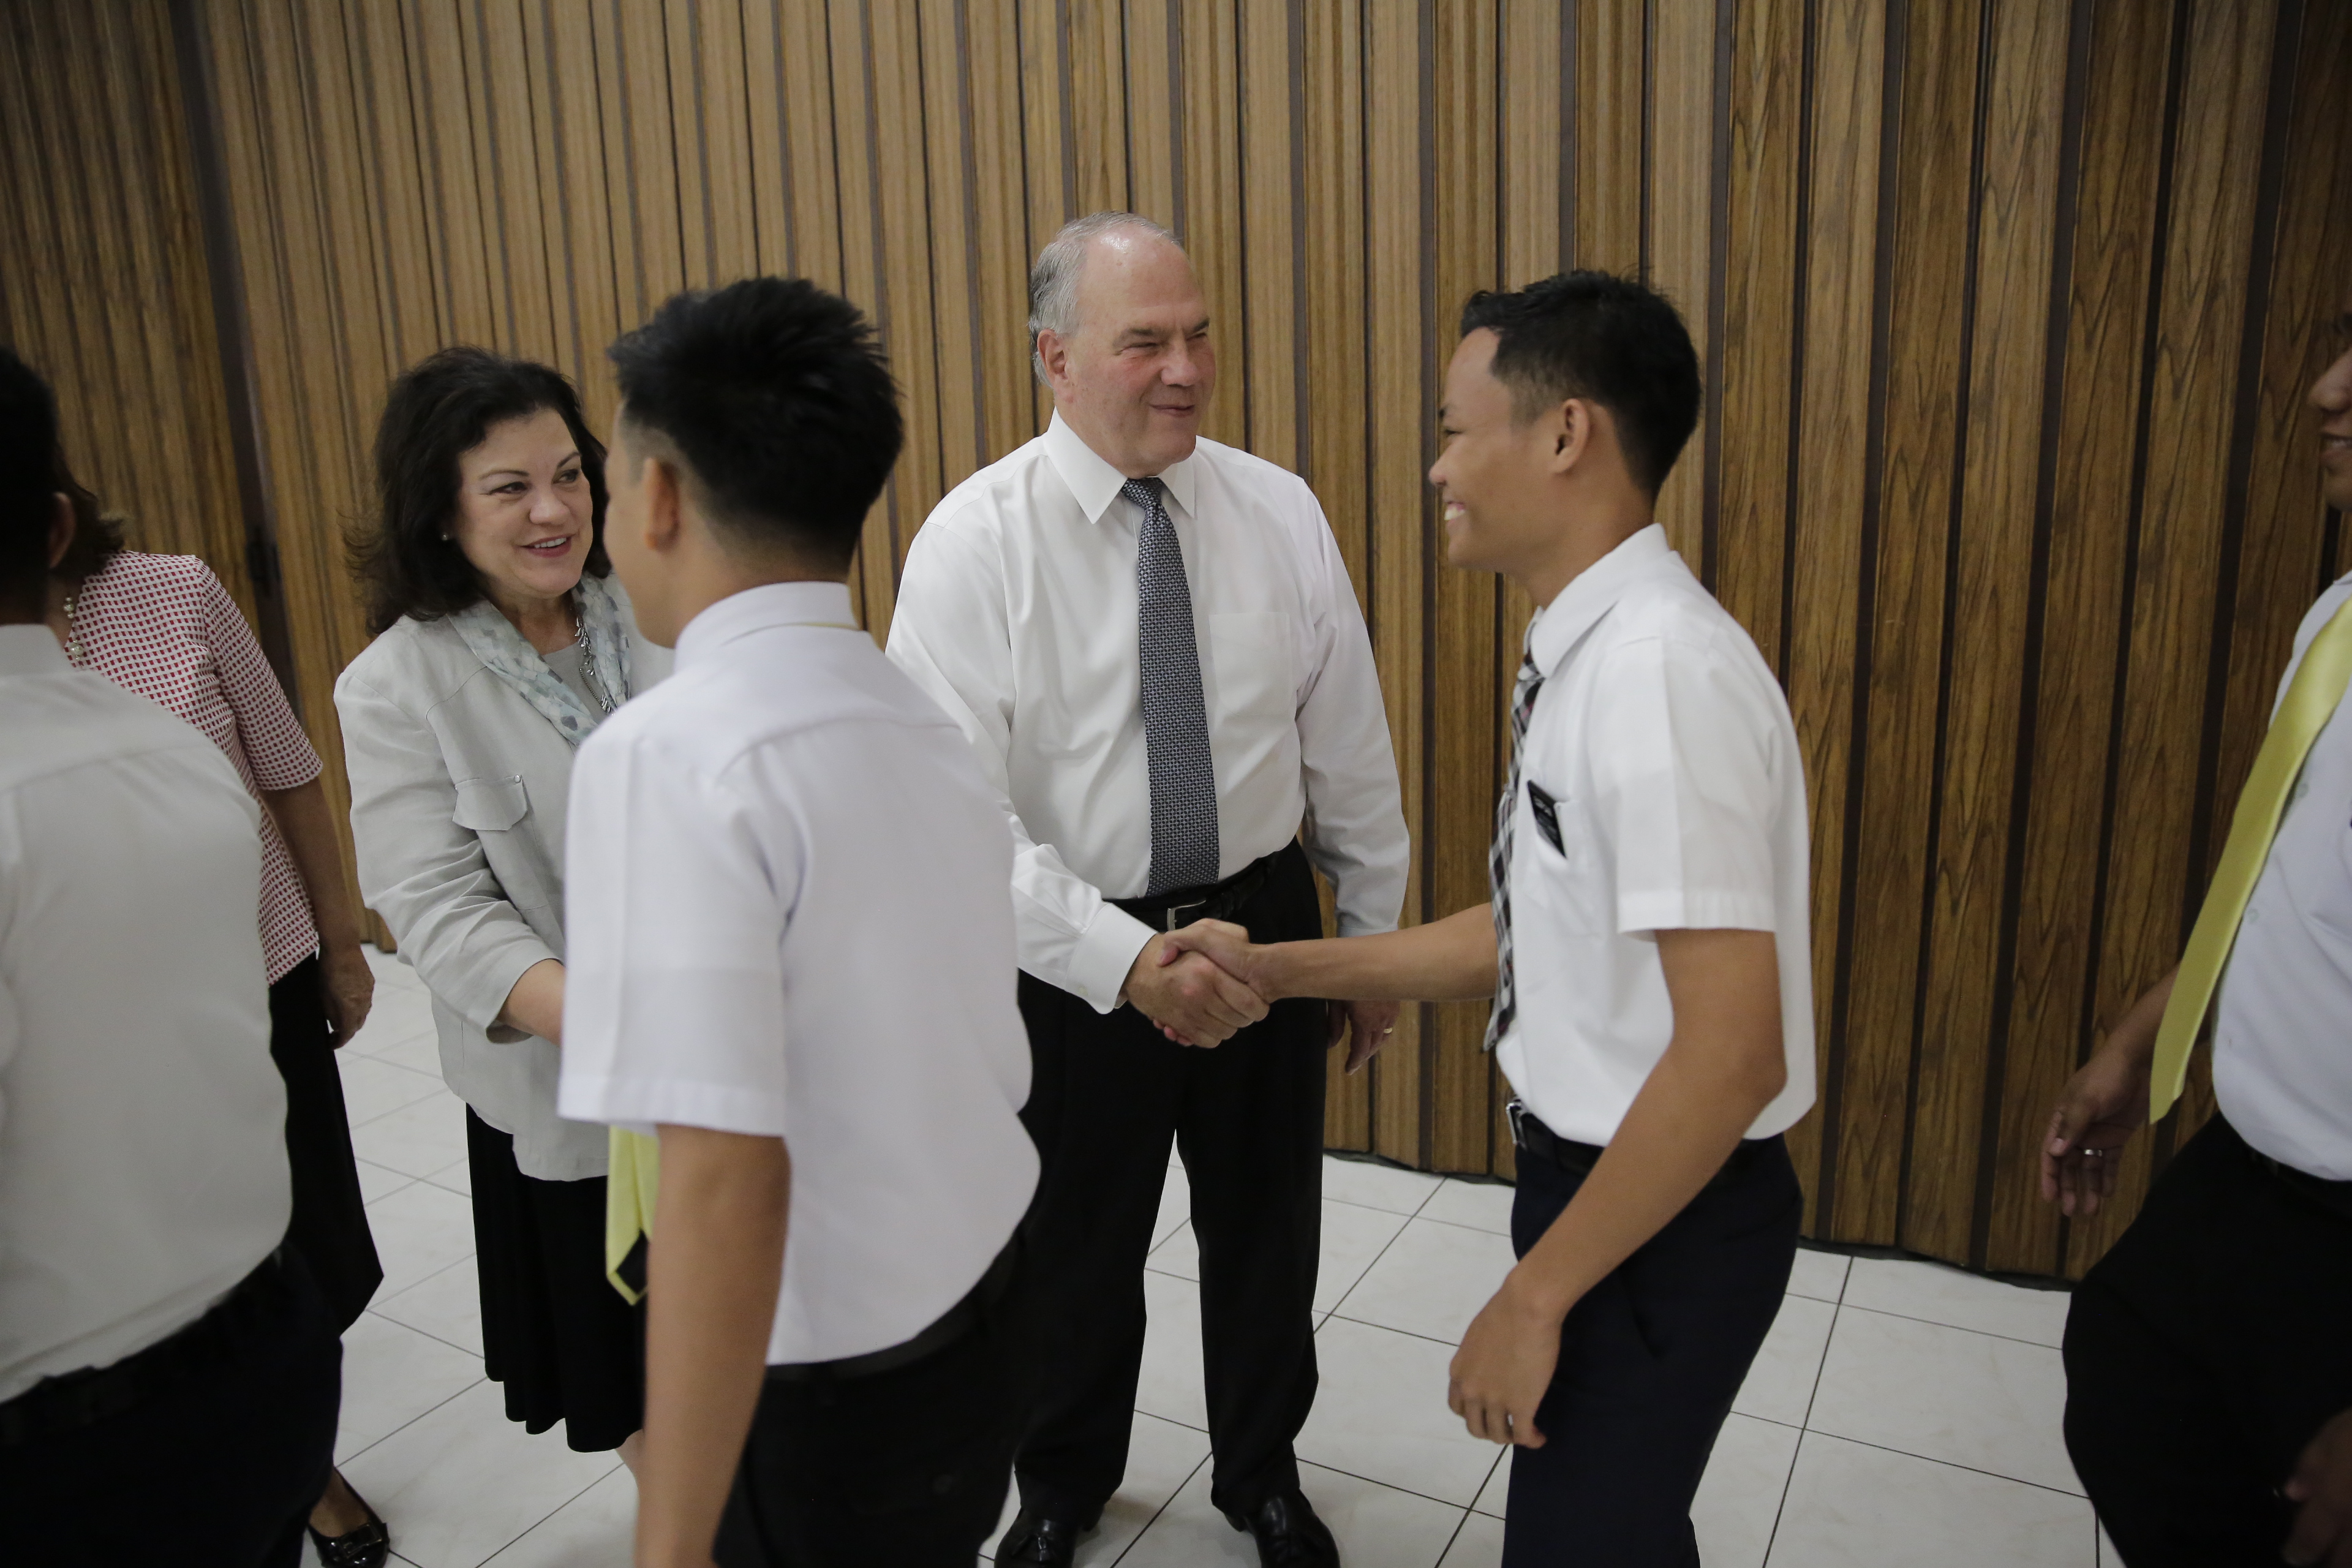 Elder Ronald A. Rasband visits with missionaries during his Feb. 13-26, 2018, trip to the Church's Philippines Area.